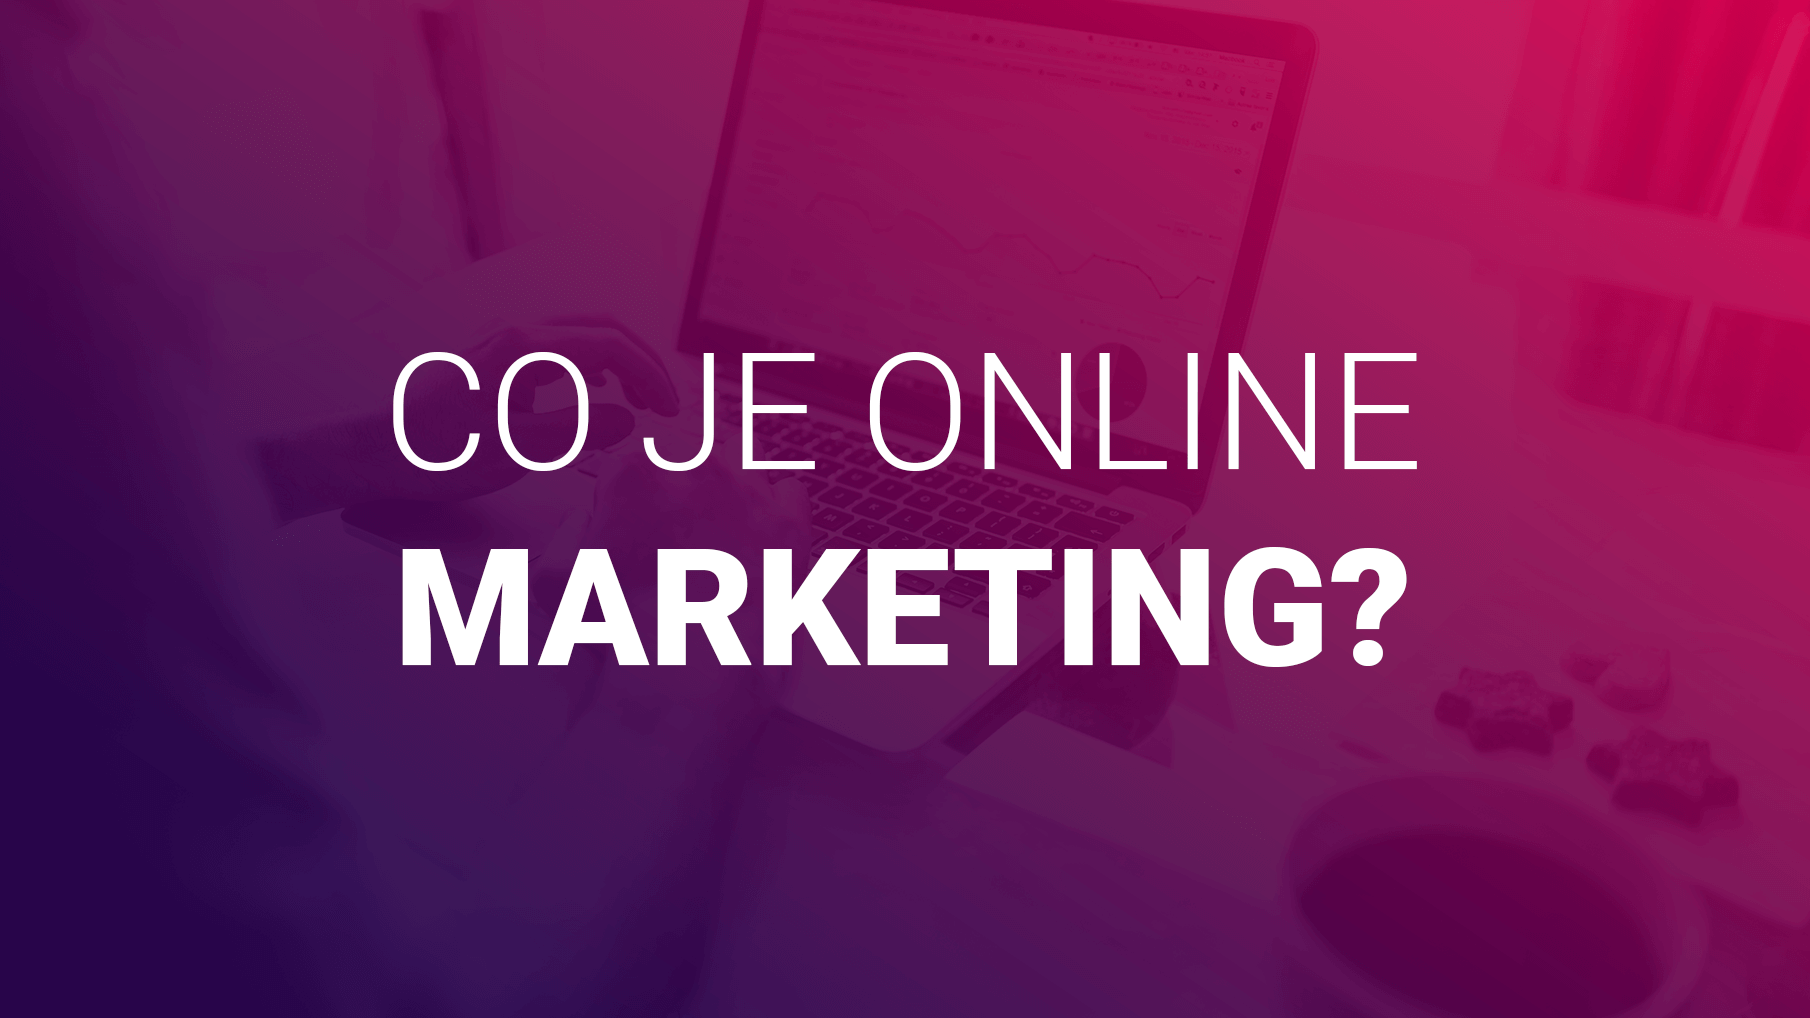 Co Je Online Marketing?